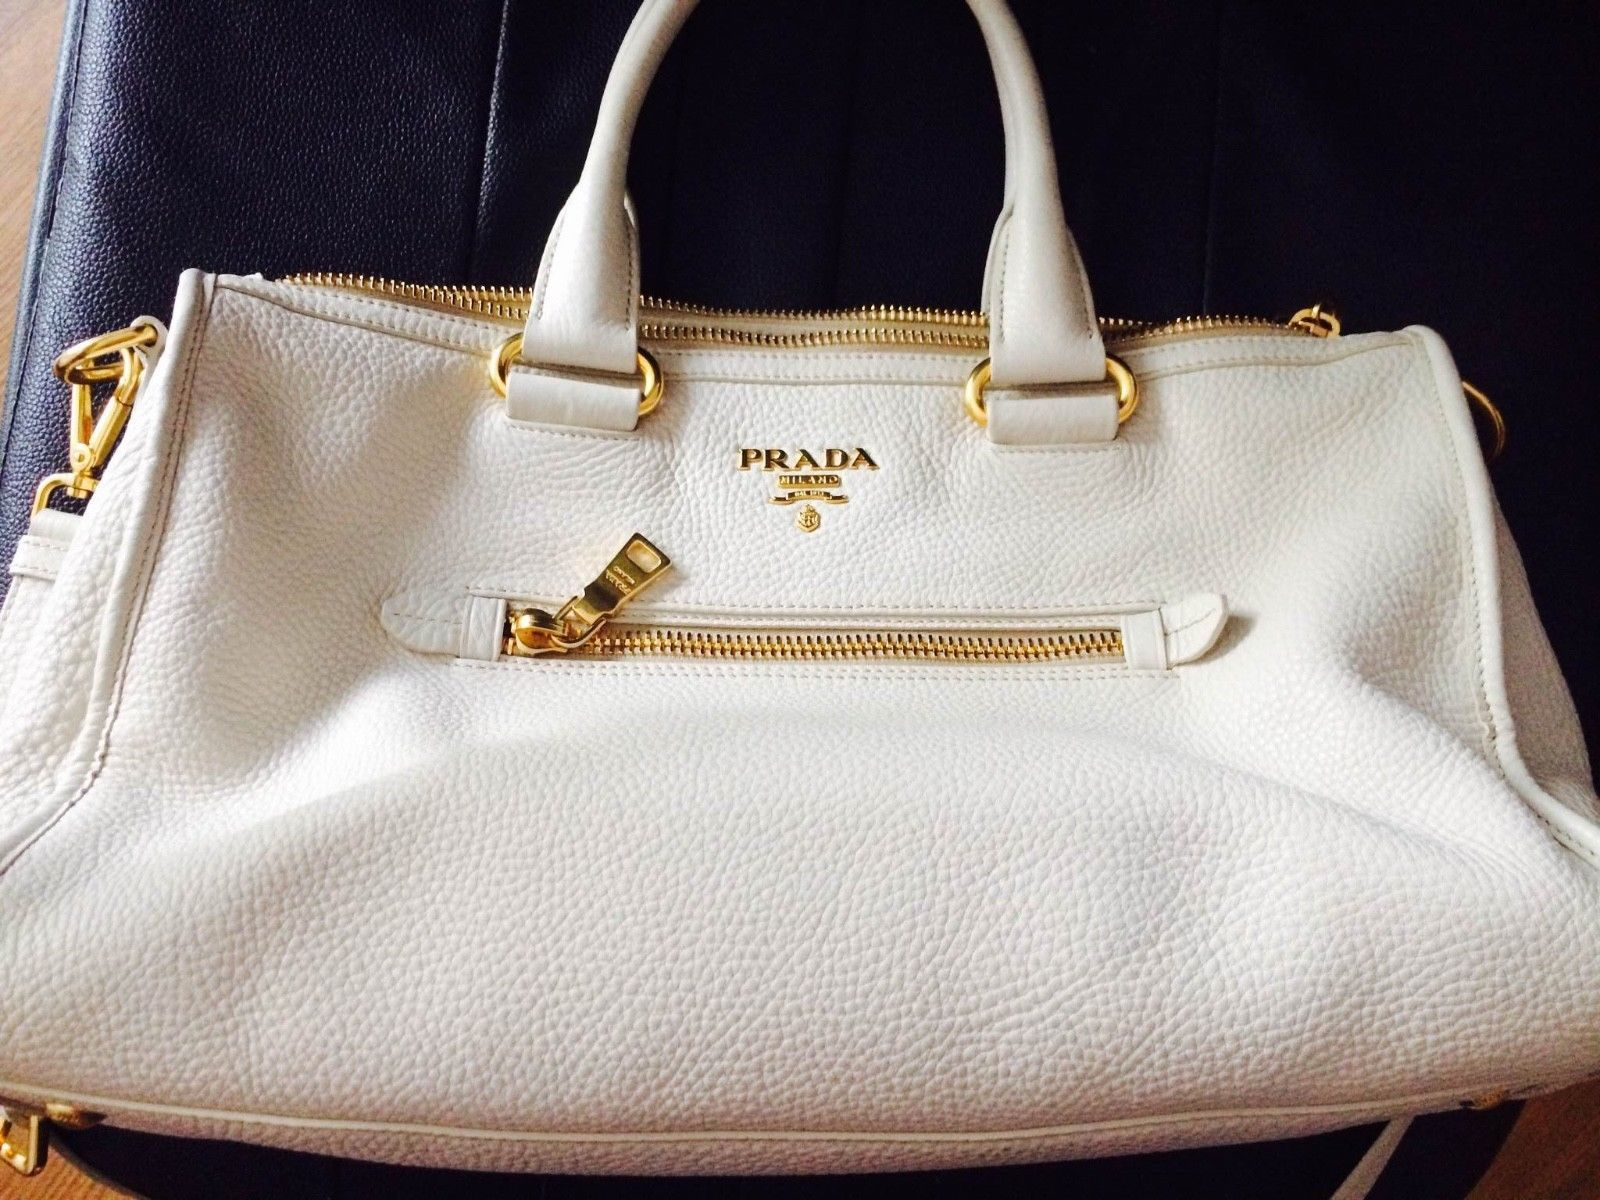 730d02568018 promo code for prada handbag white used 299.0 b15d2 d36f2